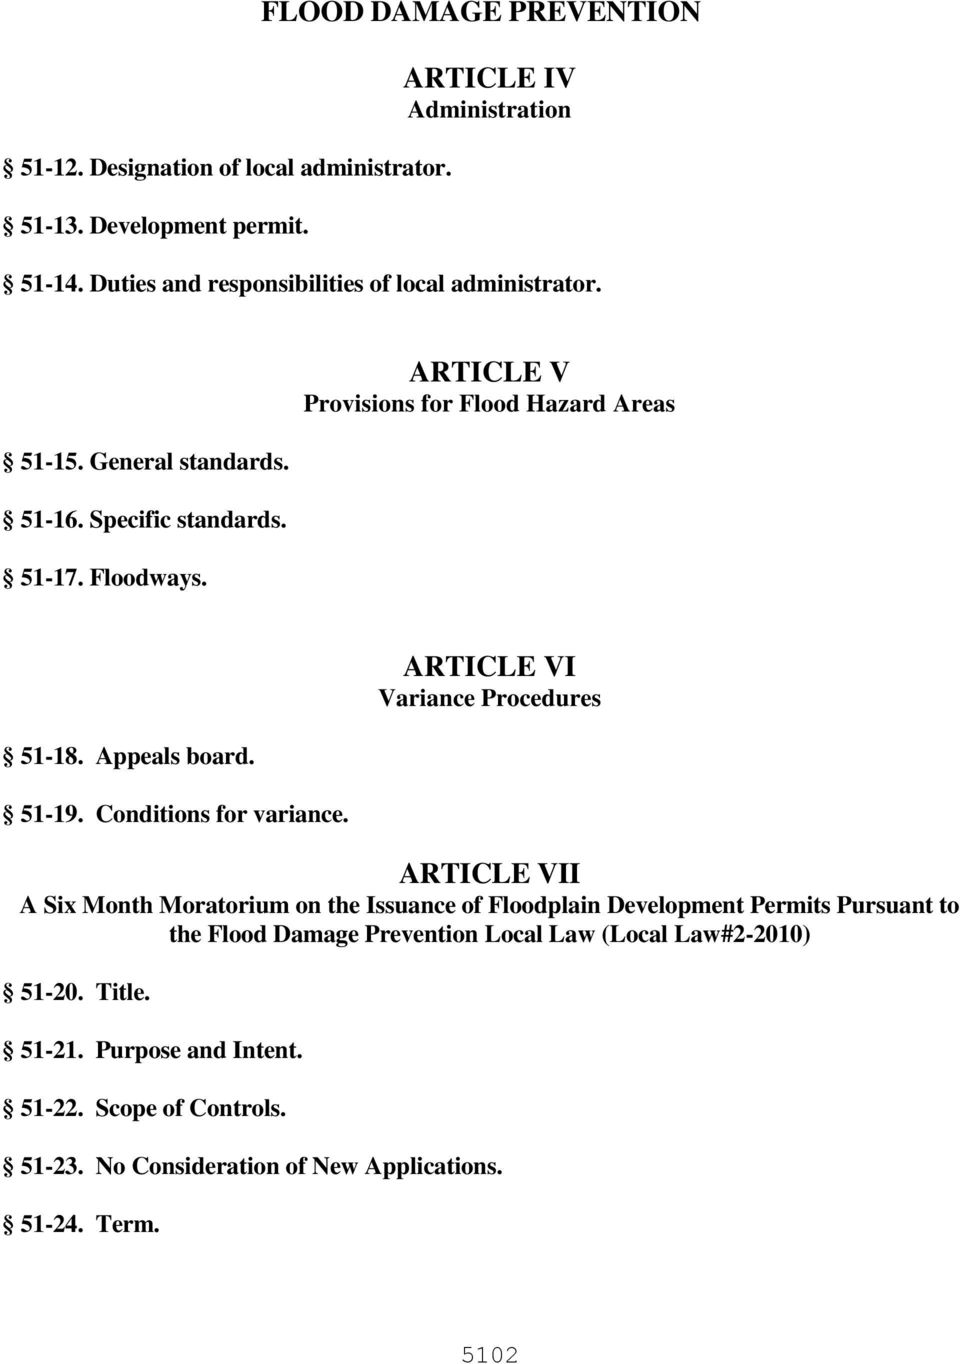 ARTICLE V Provisions for Flood Hazard Areas 51-18. Appeals board. 51-19. Conditions for variance.